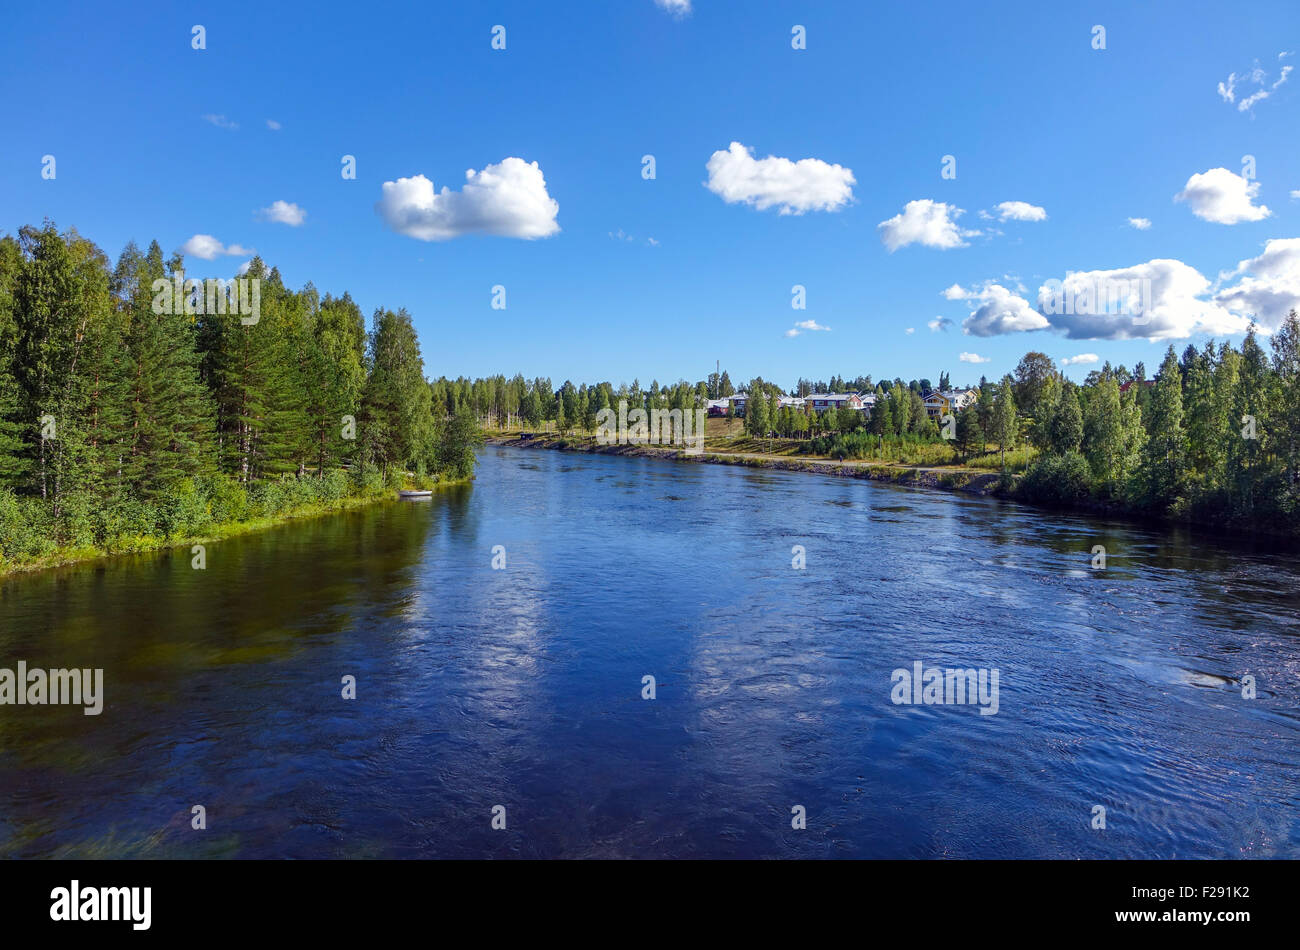 Skelleftea River with reflections and boreal pine forest - Stock Image